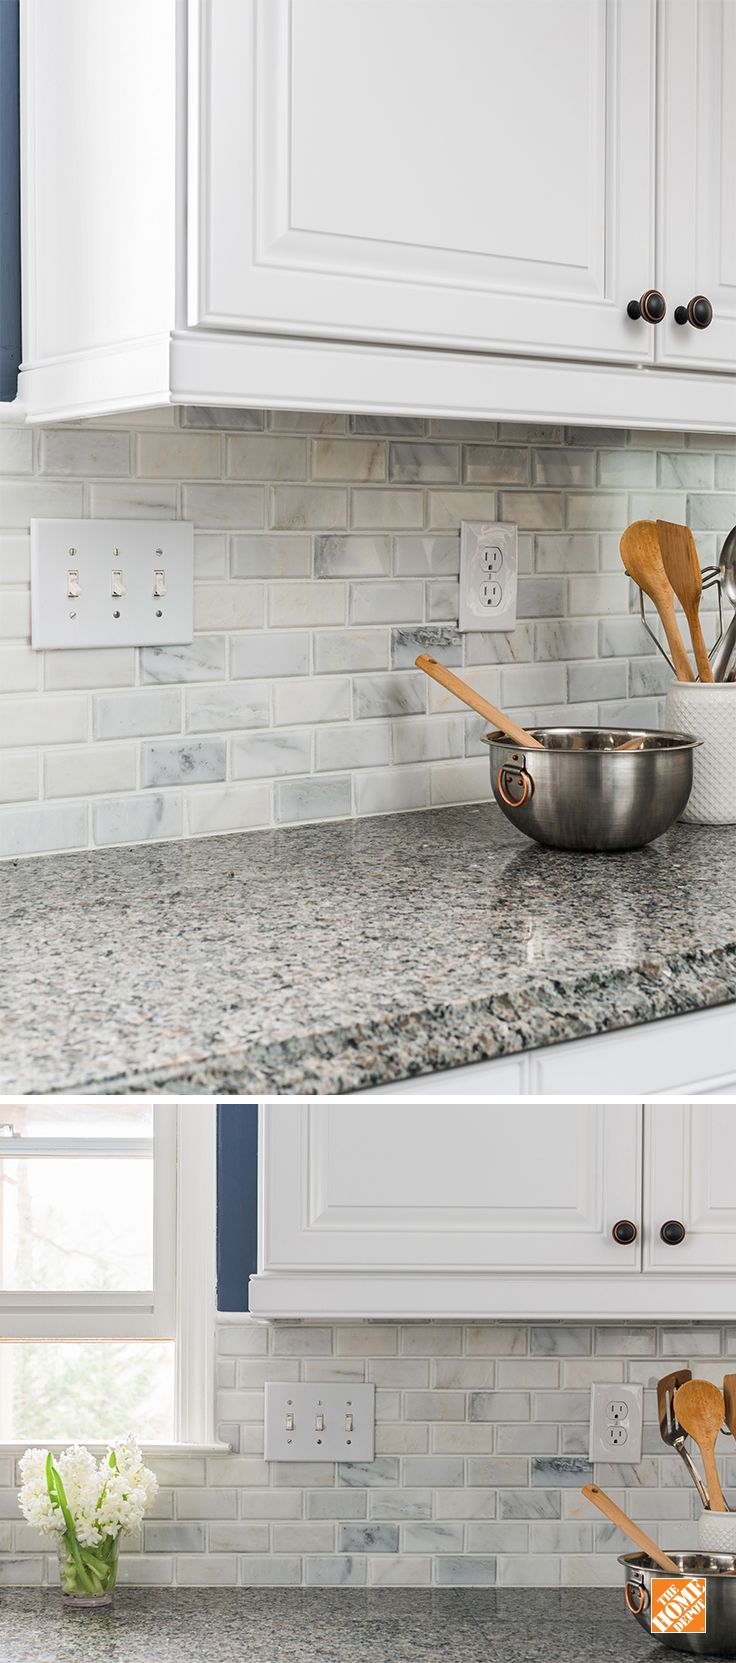 kitchen ideas inspiration kitchen remodel home depot Let The Home Depot install your kitchen backsplash for you It s quick easy